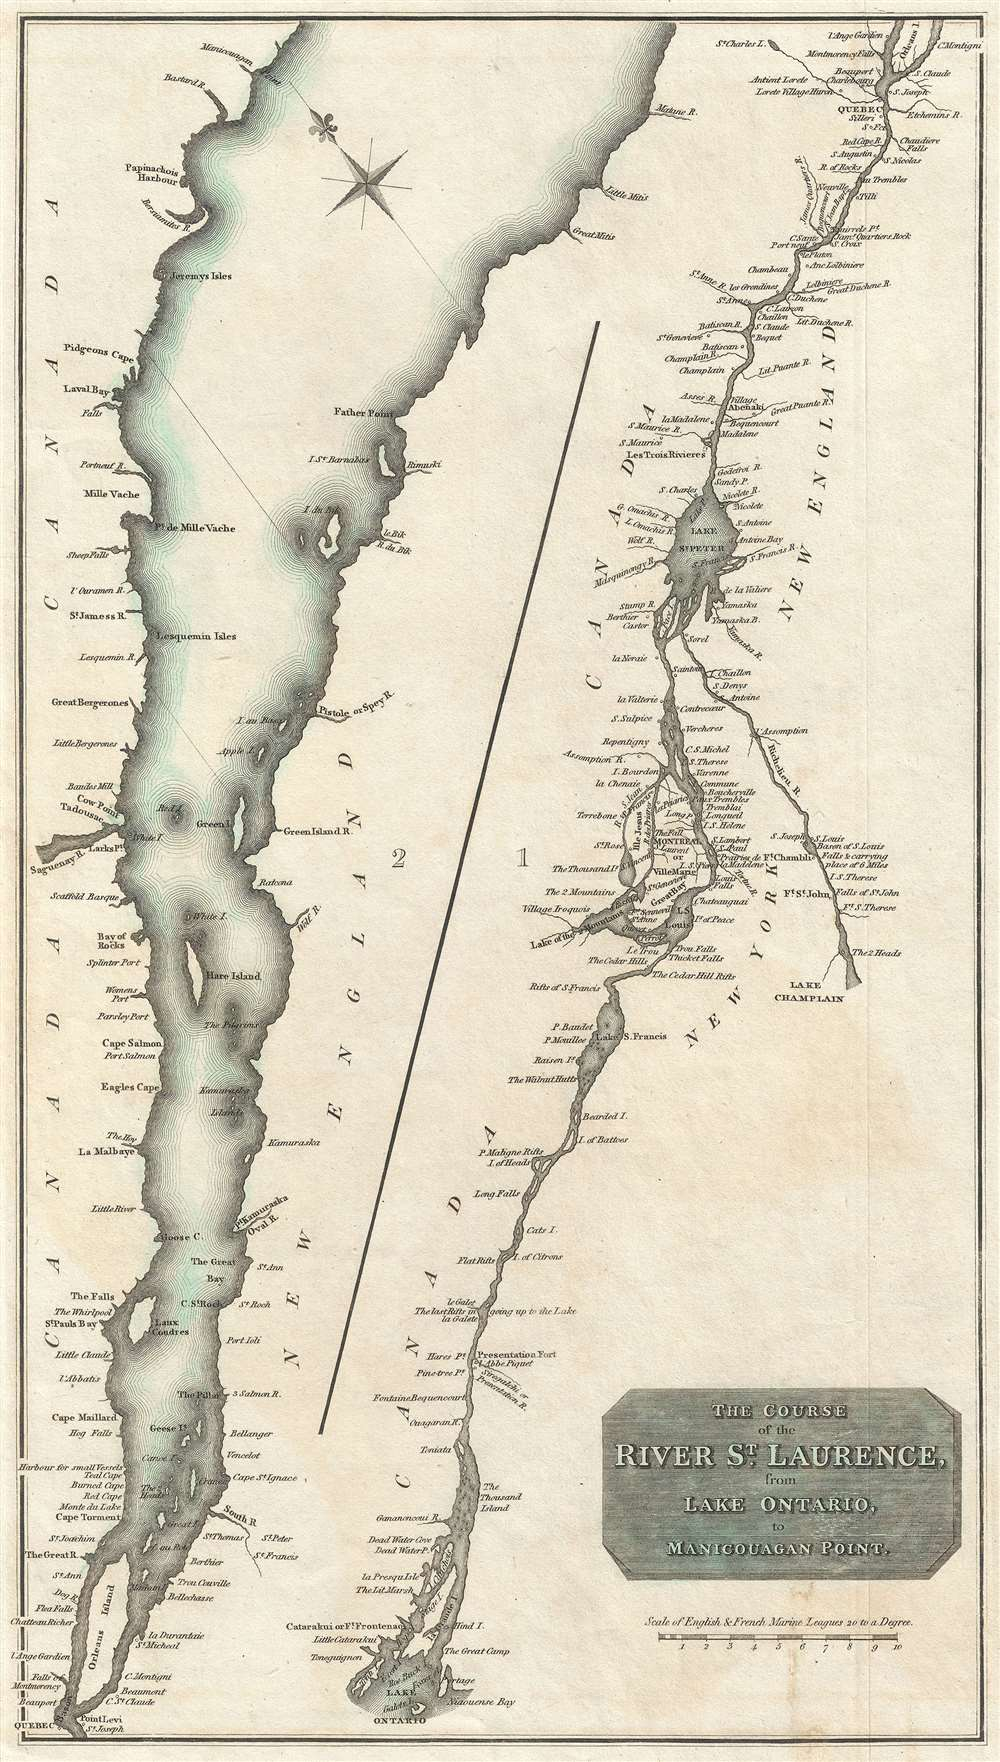 The Course of the River St. Laurence, from Lake Ontario to Manicouagan Point.